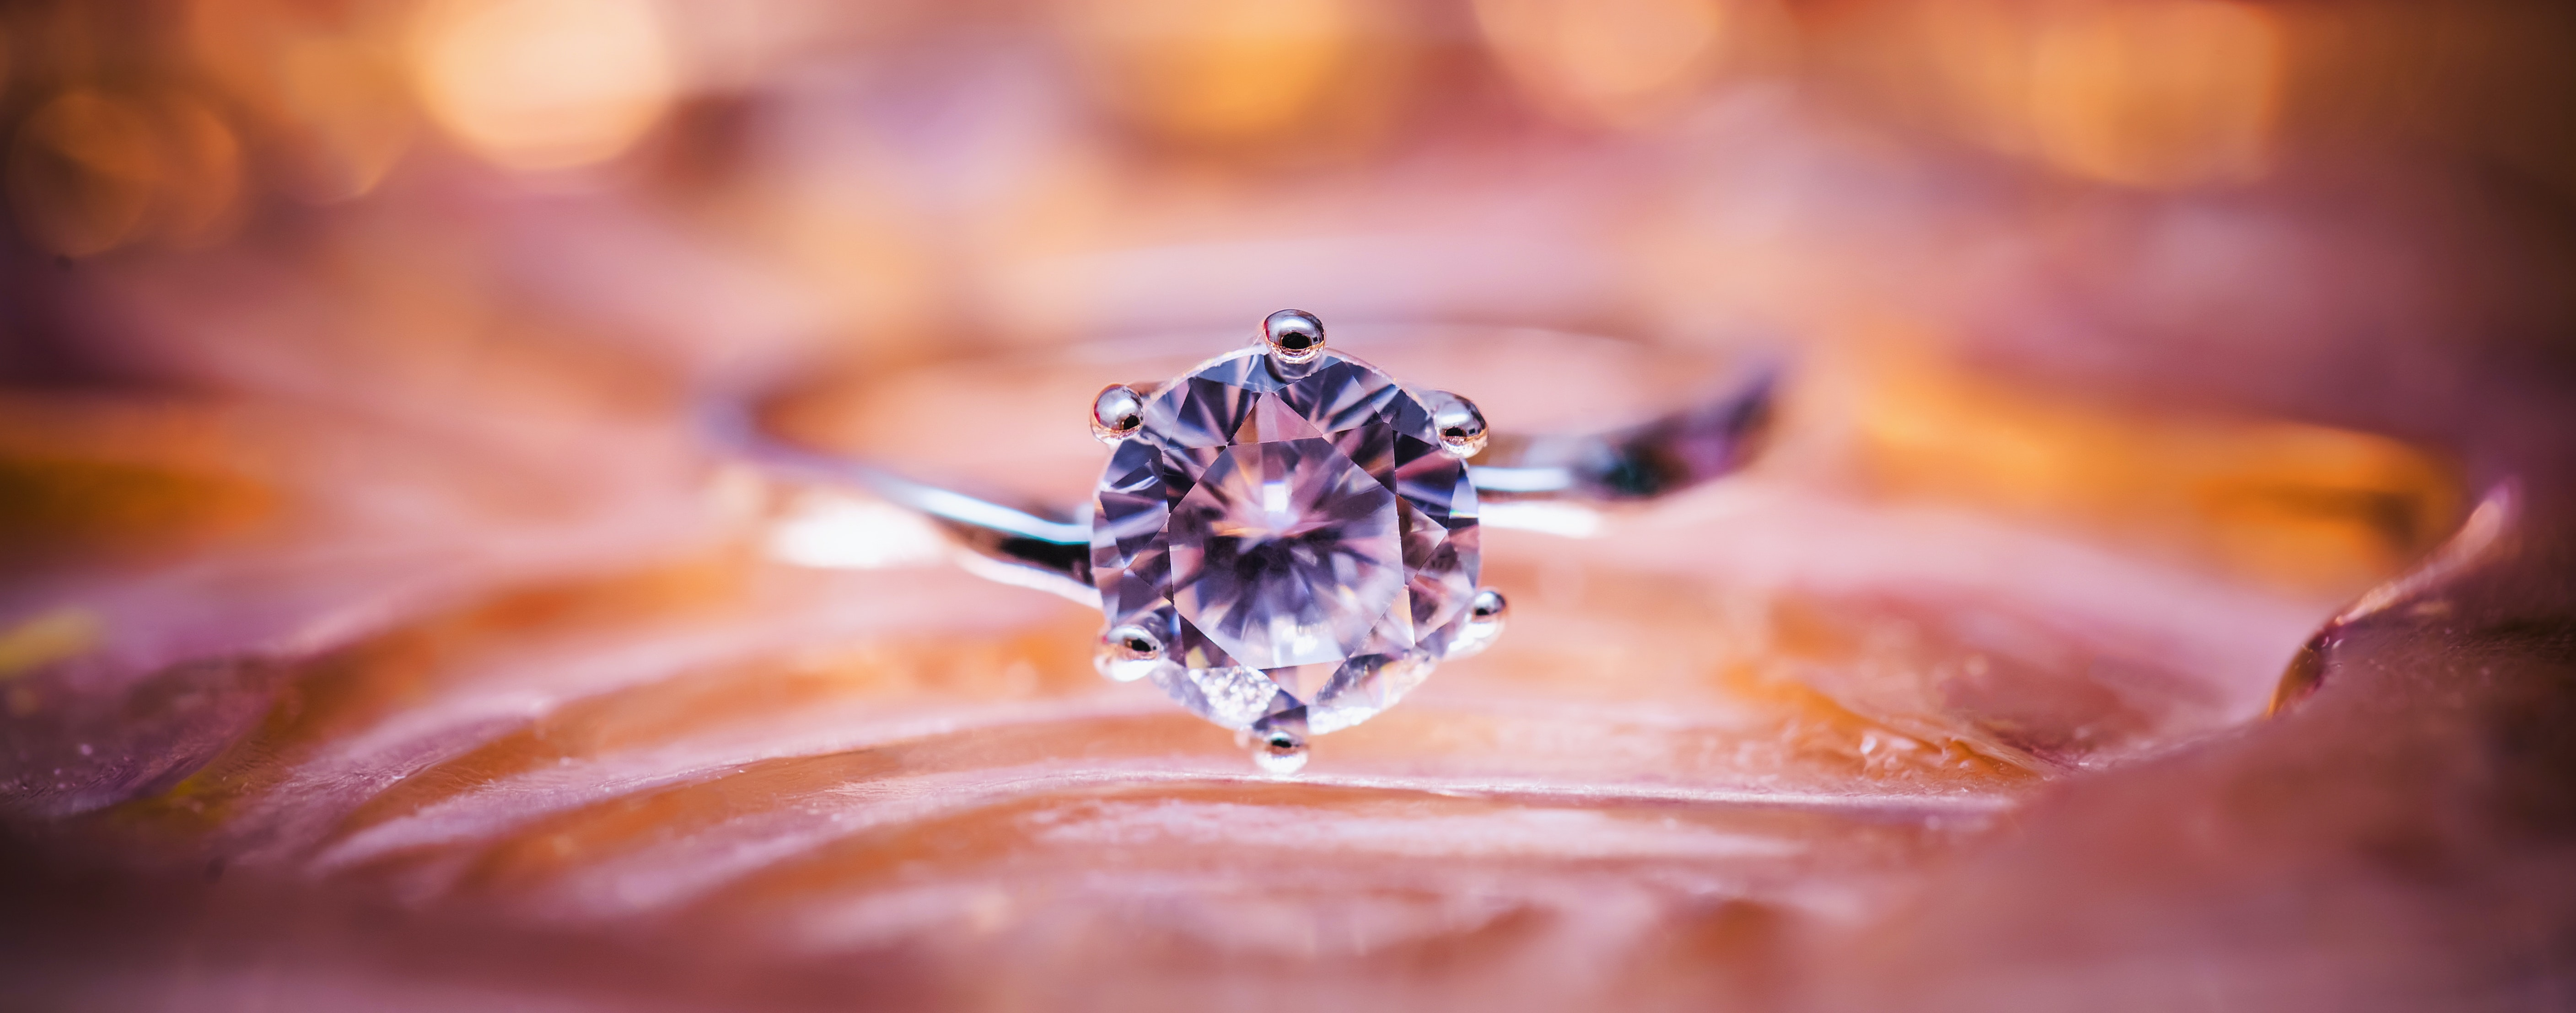 Close Up Photo Of Grey And Diamond Ring Free Stock Photo